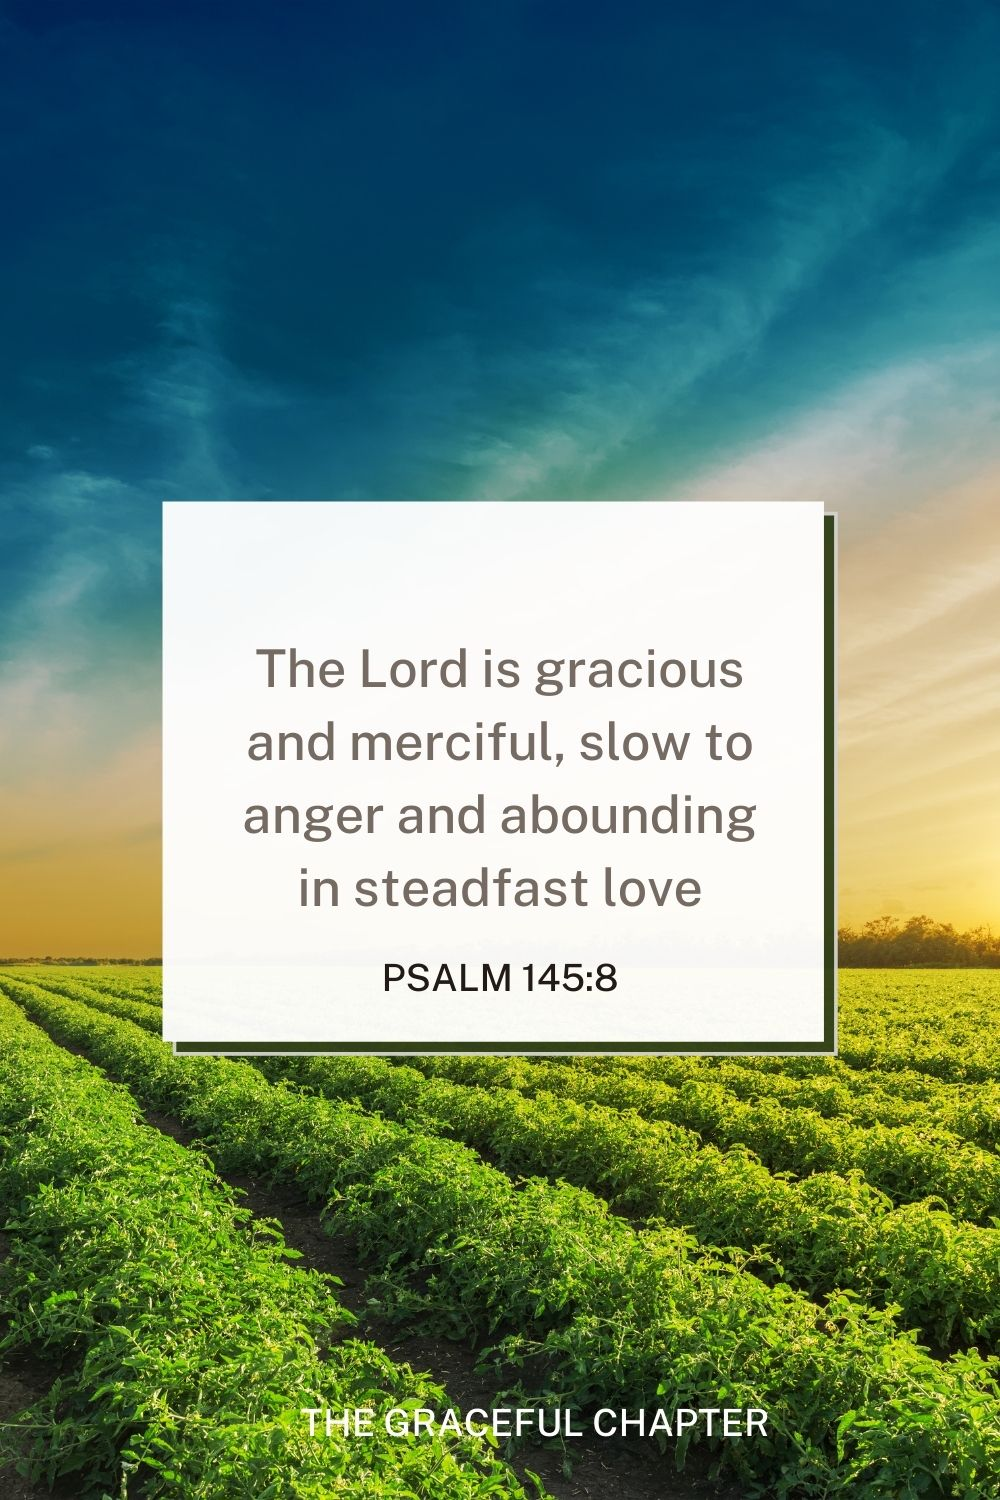 The Lord is gracious and merciful, slow to anger and abounding in steadfast love. 4